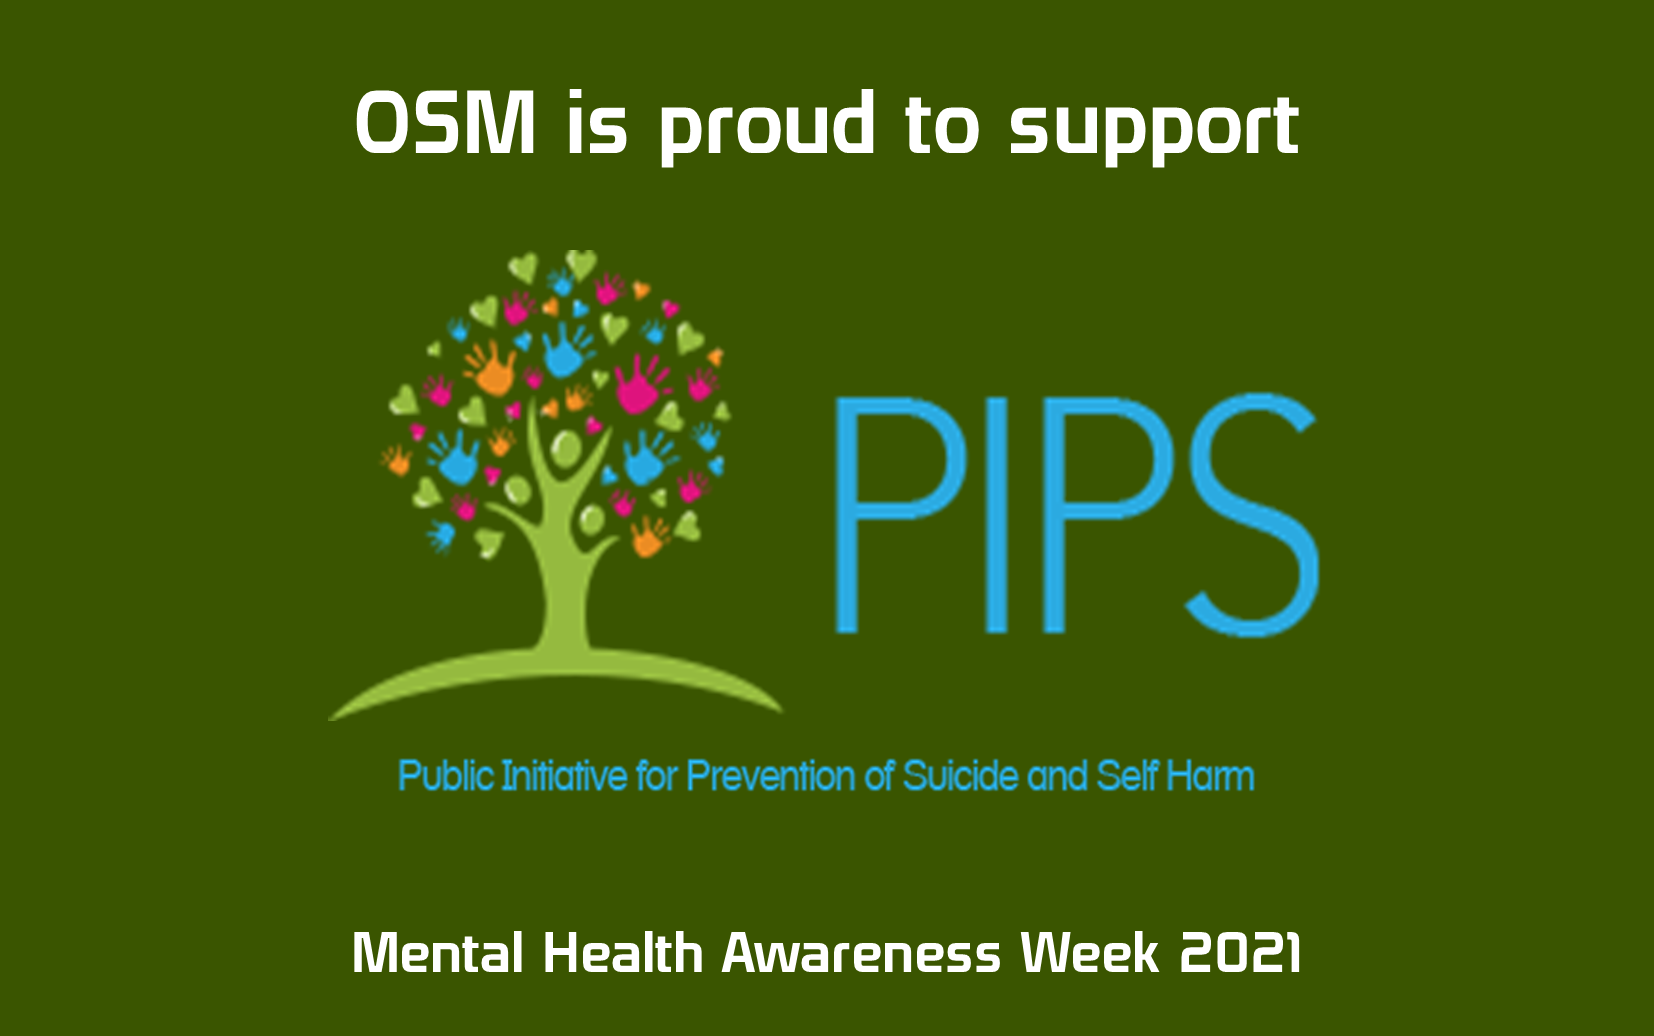 Mental Health Awareness Week With OSM And PIPS